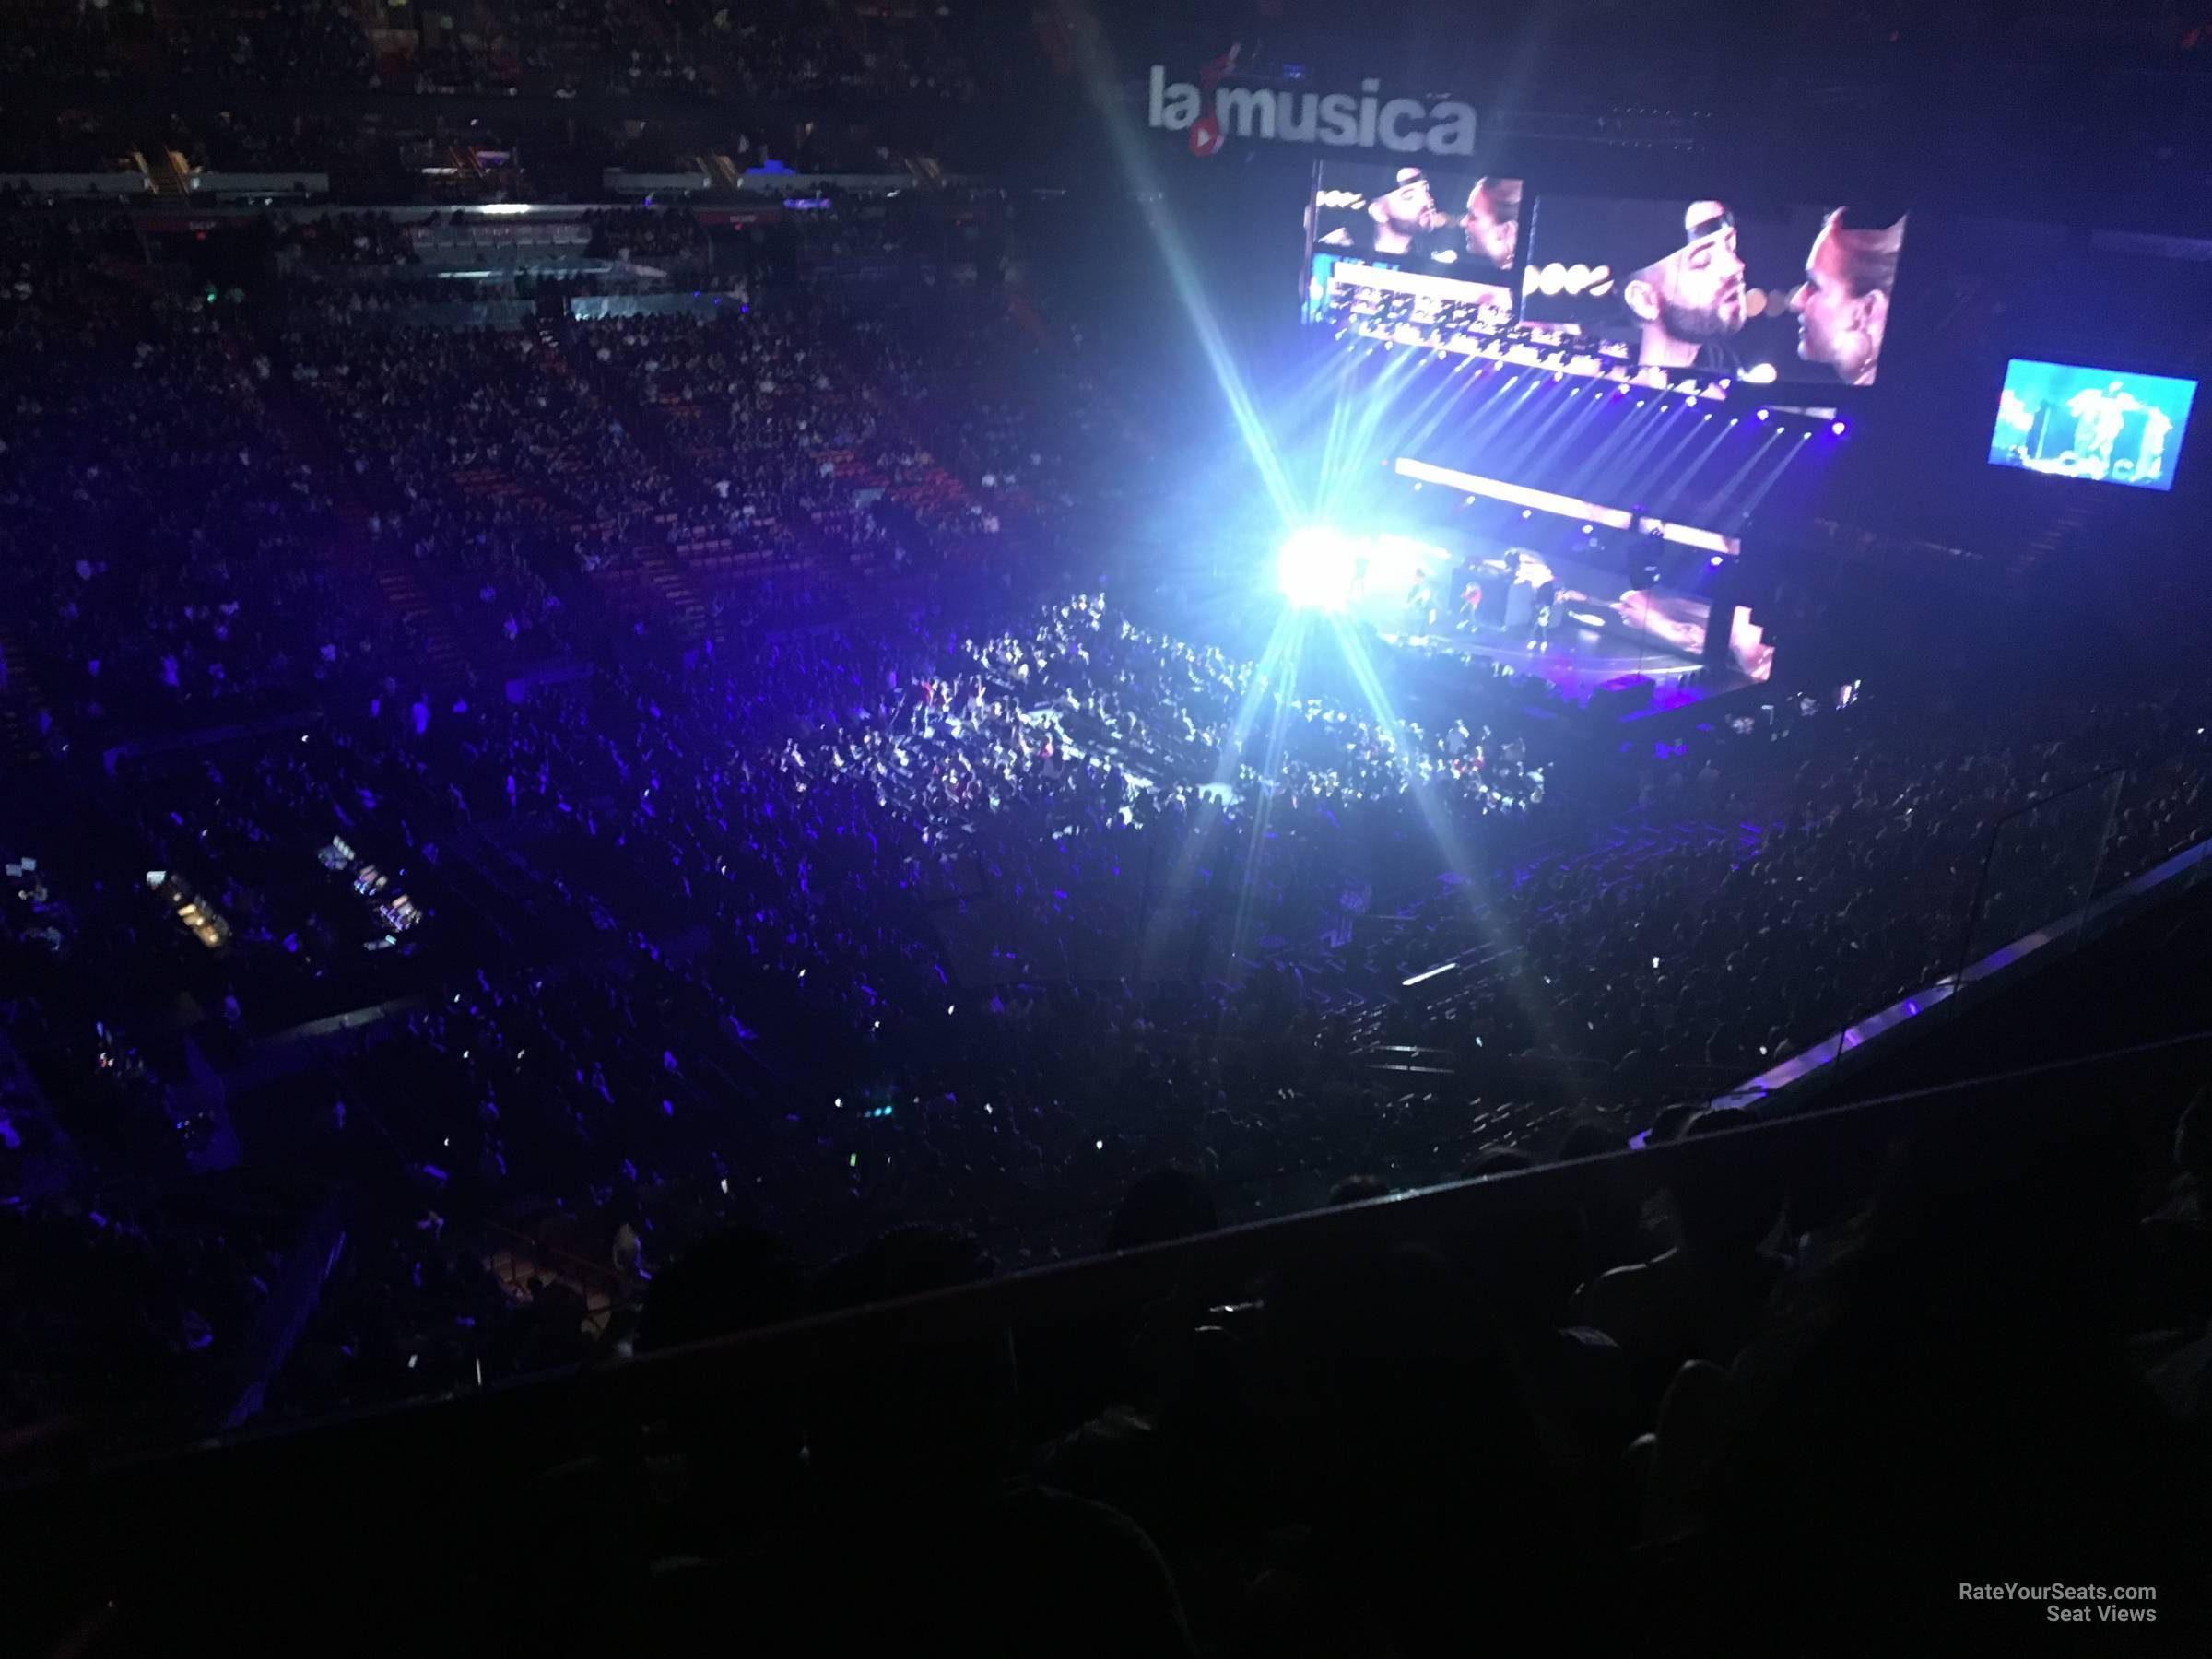 Concert Seat View for AmericanAirlines Arena Section 311, Row 3